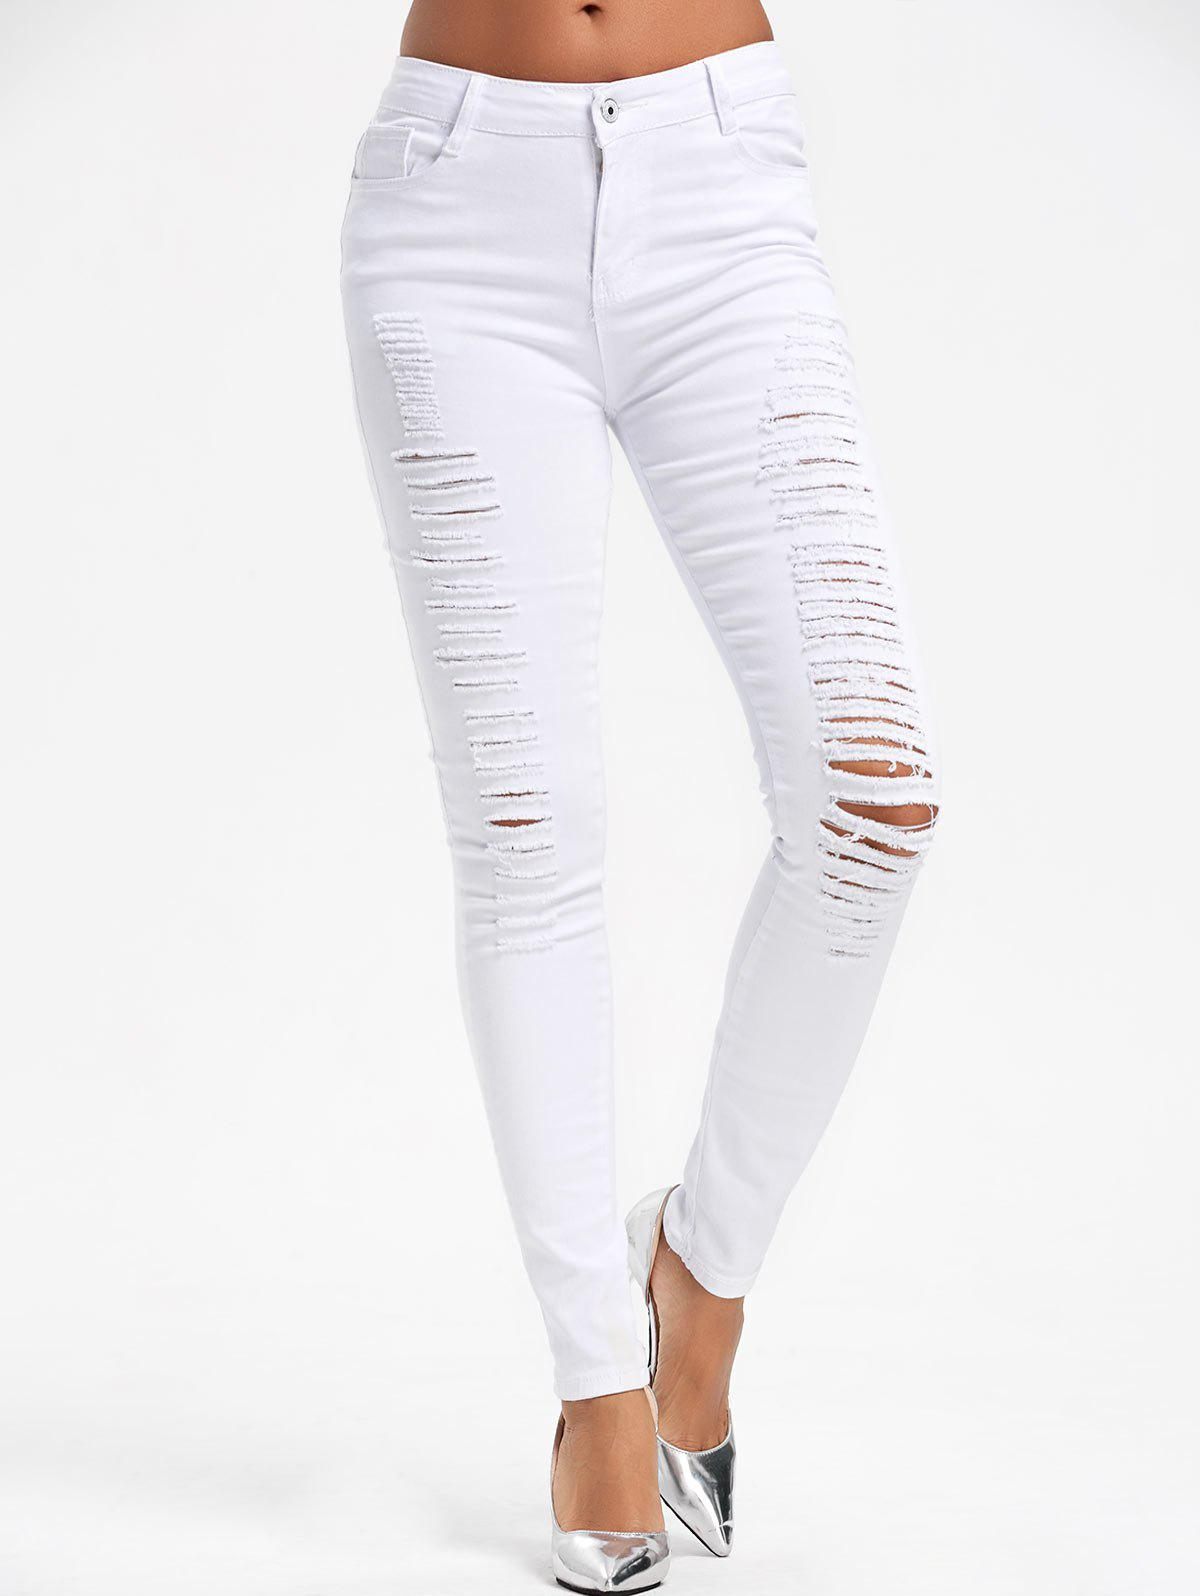 High Waist Ripped Skinny Pants summer women stretch slim pencil pants full length sexy ripped hole skinny high waist trousers plus size pantalon femme